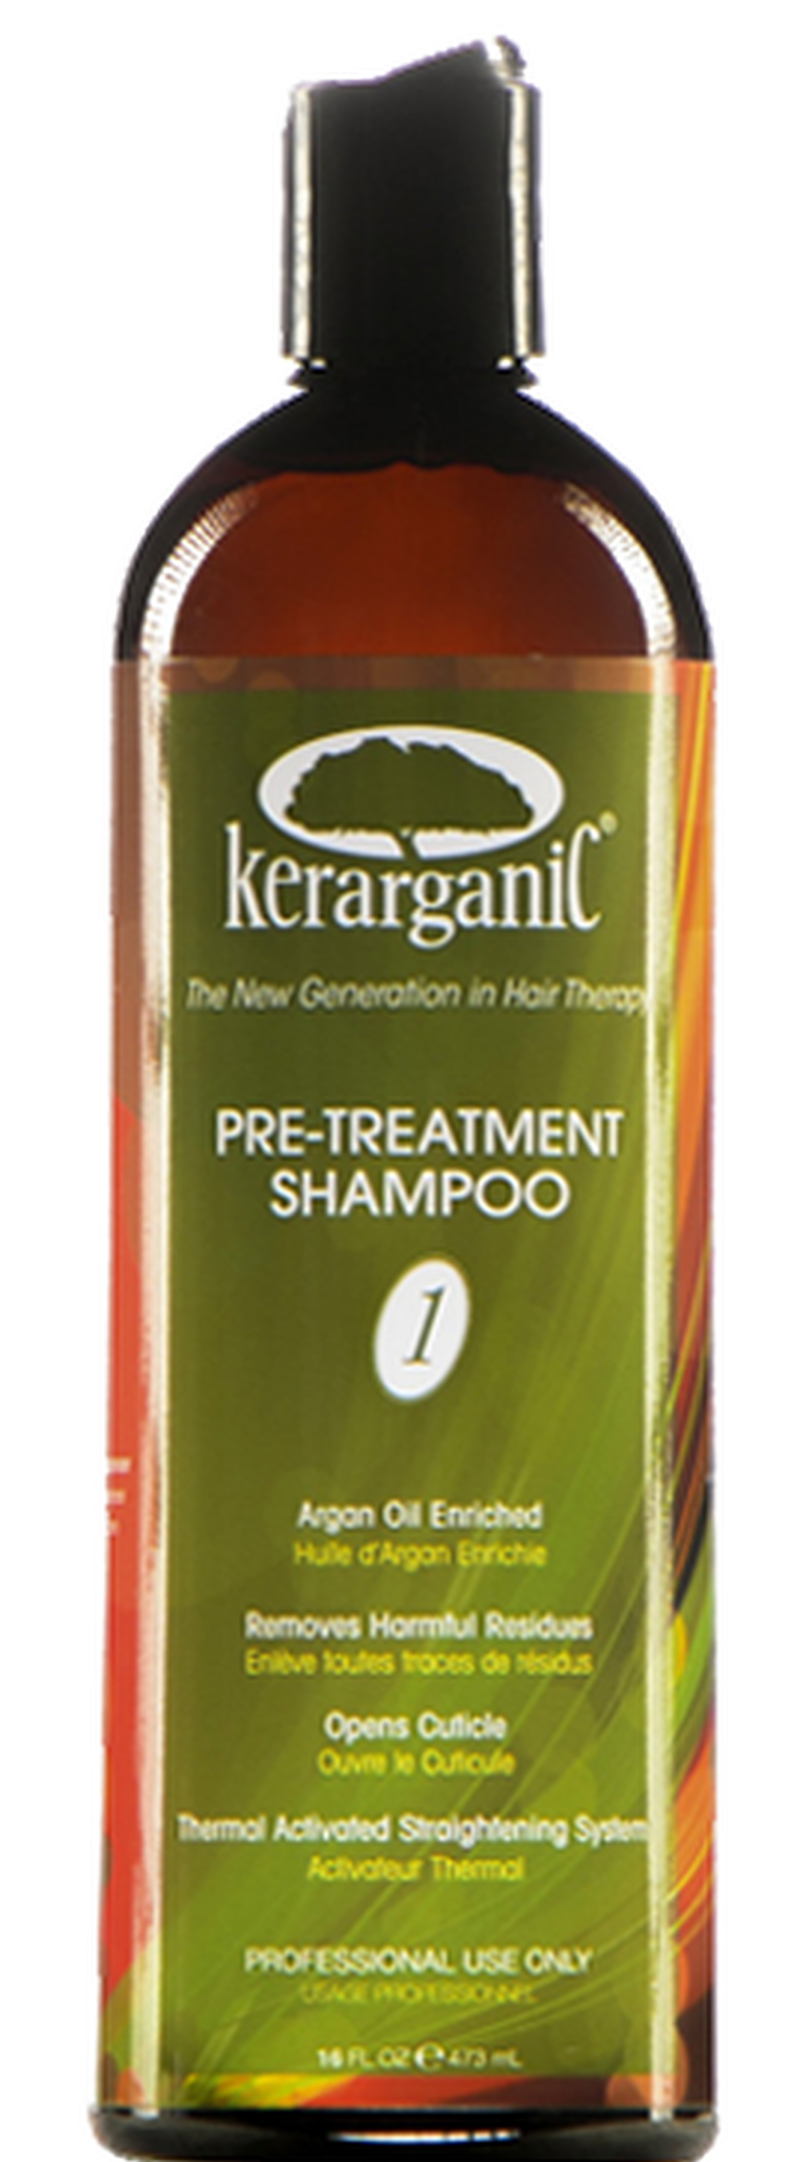 KERARGANIC PRE-TREATMENT SHAMPOO ST1